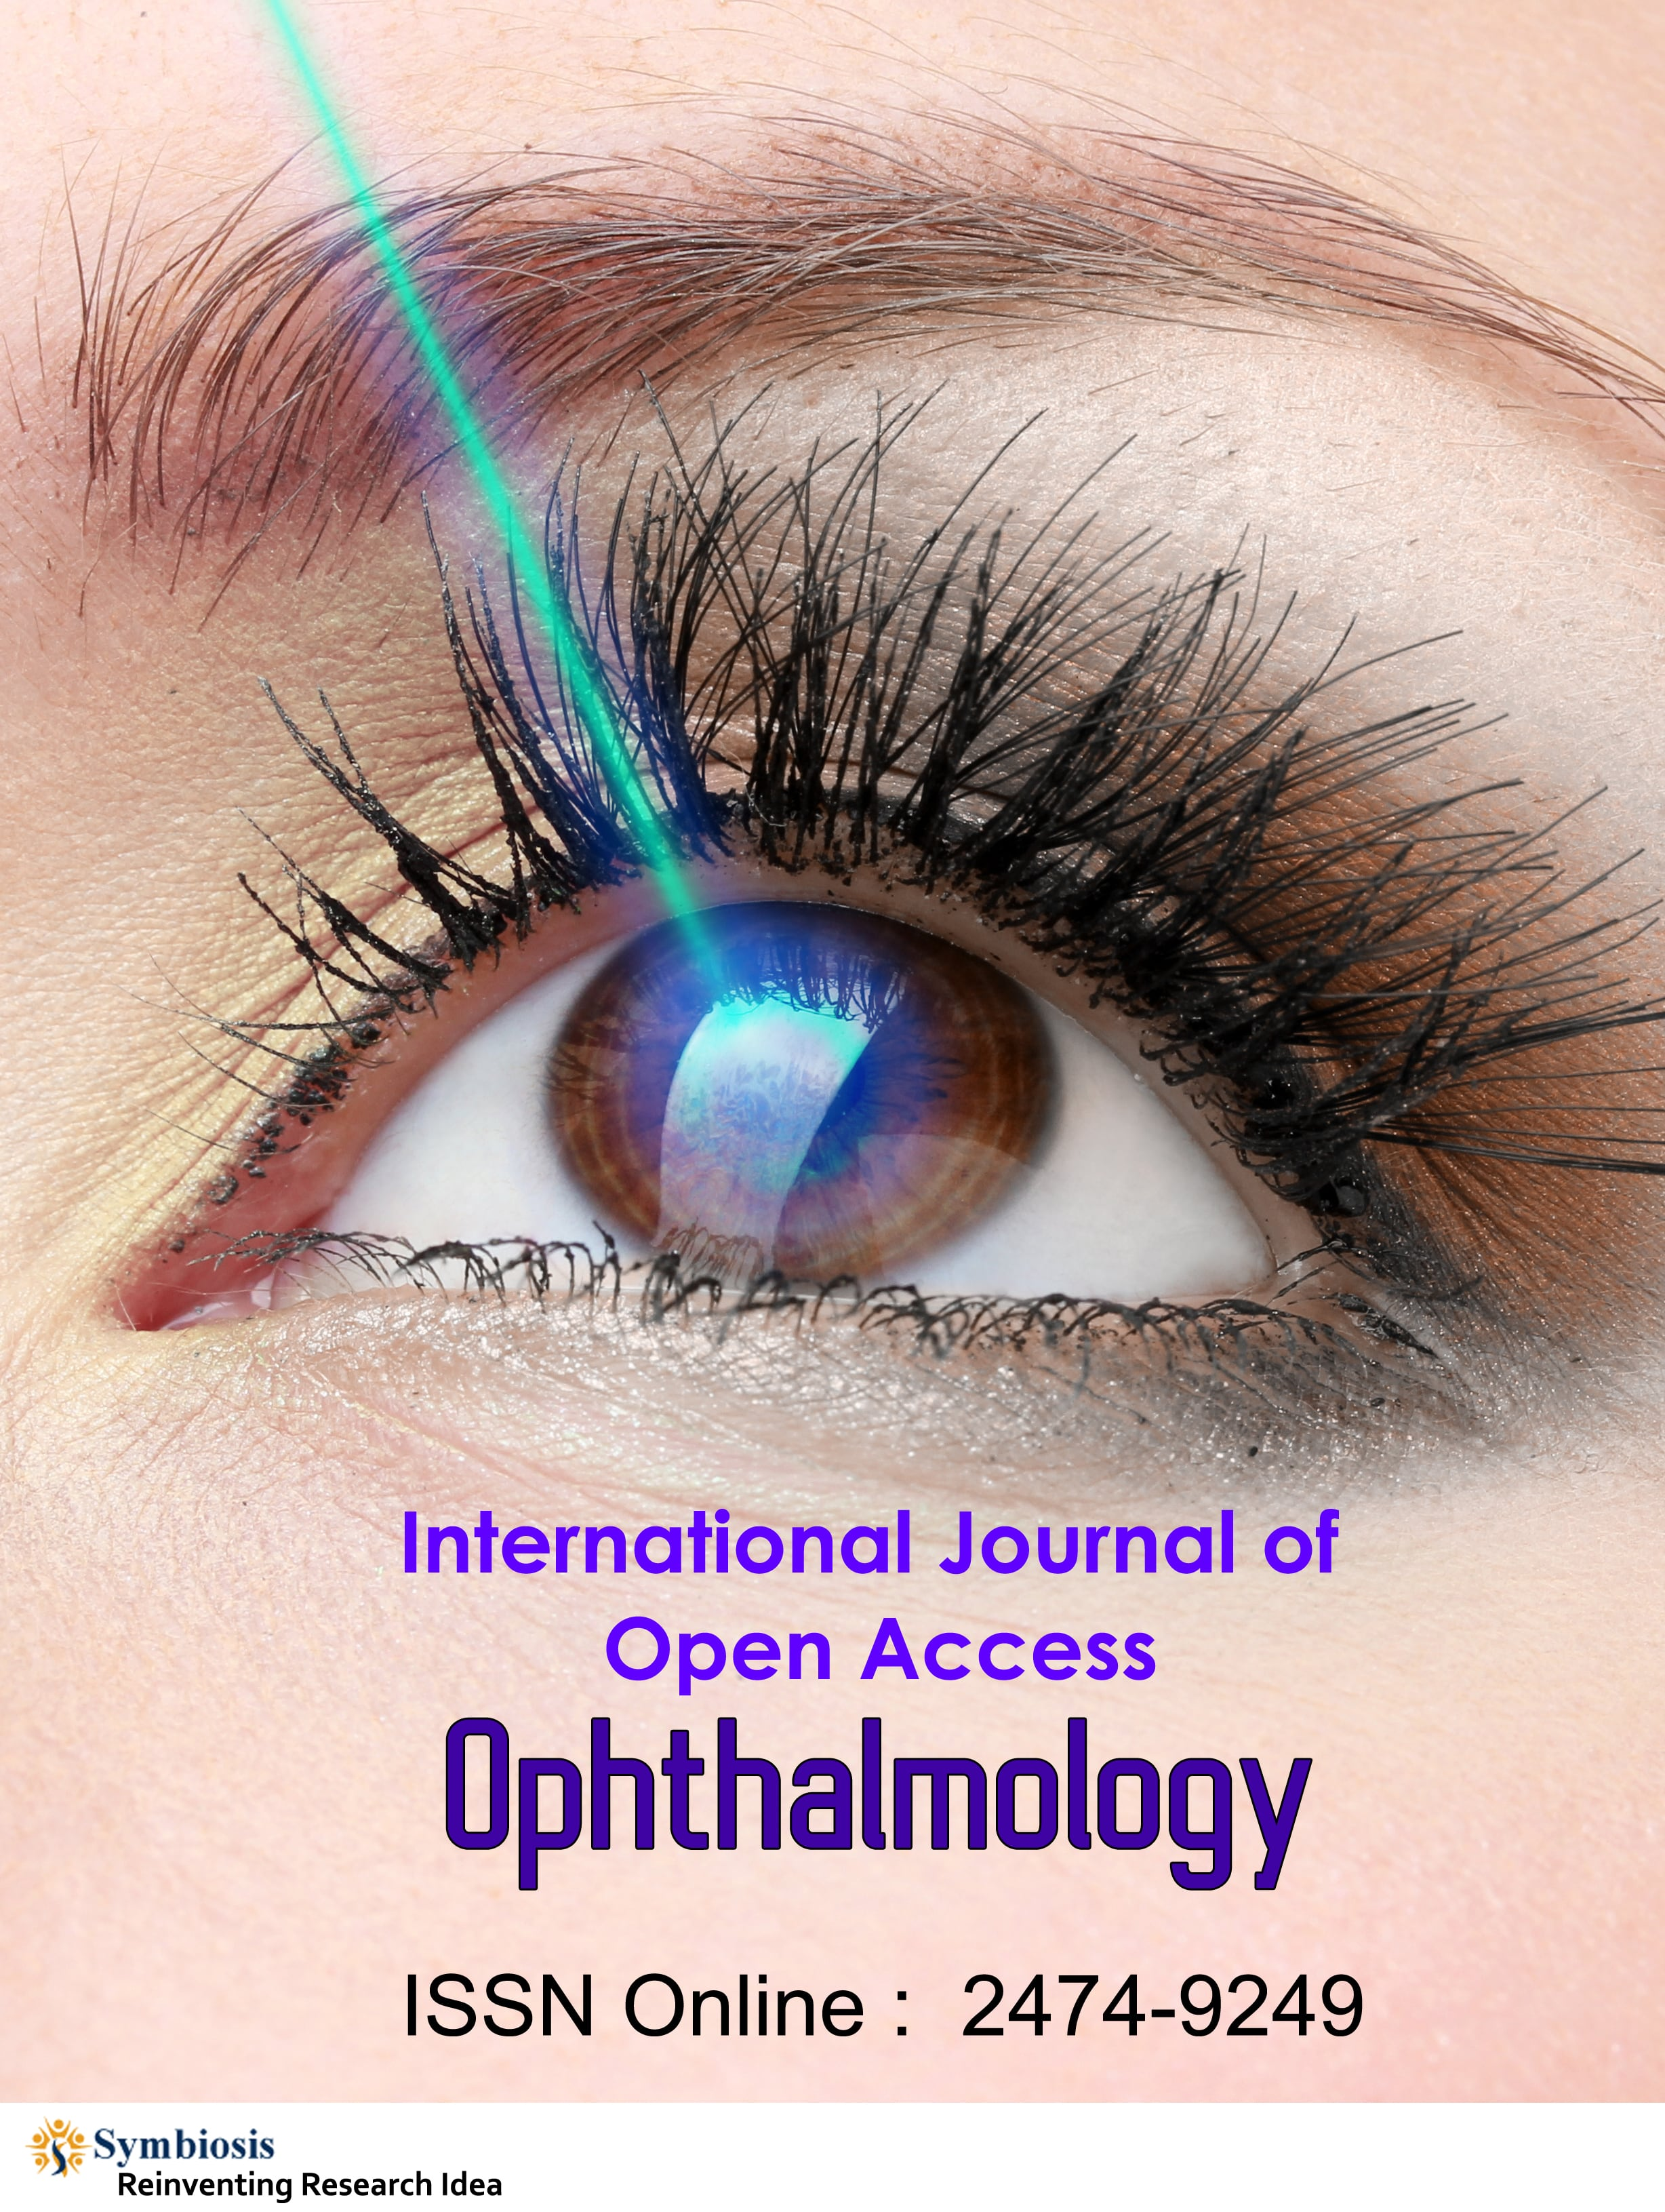 International Journal of Open Access Ophthalmology